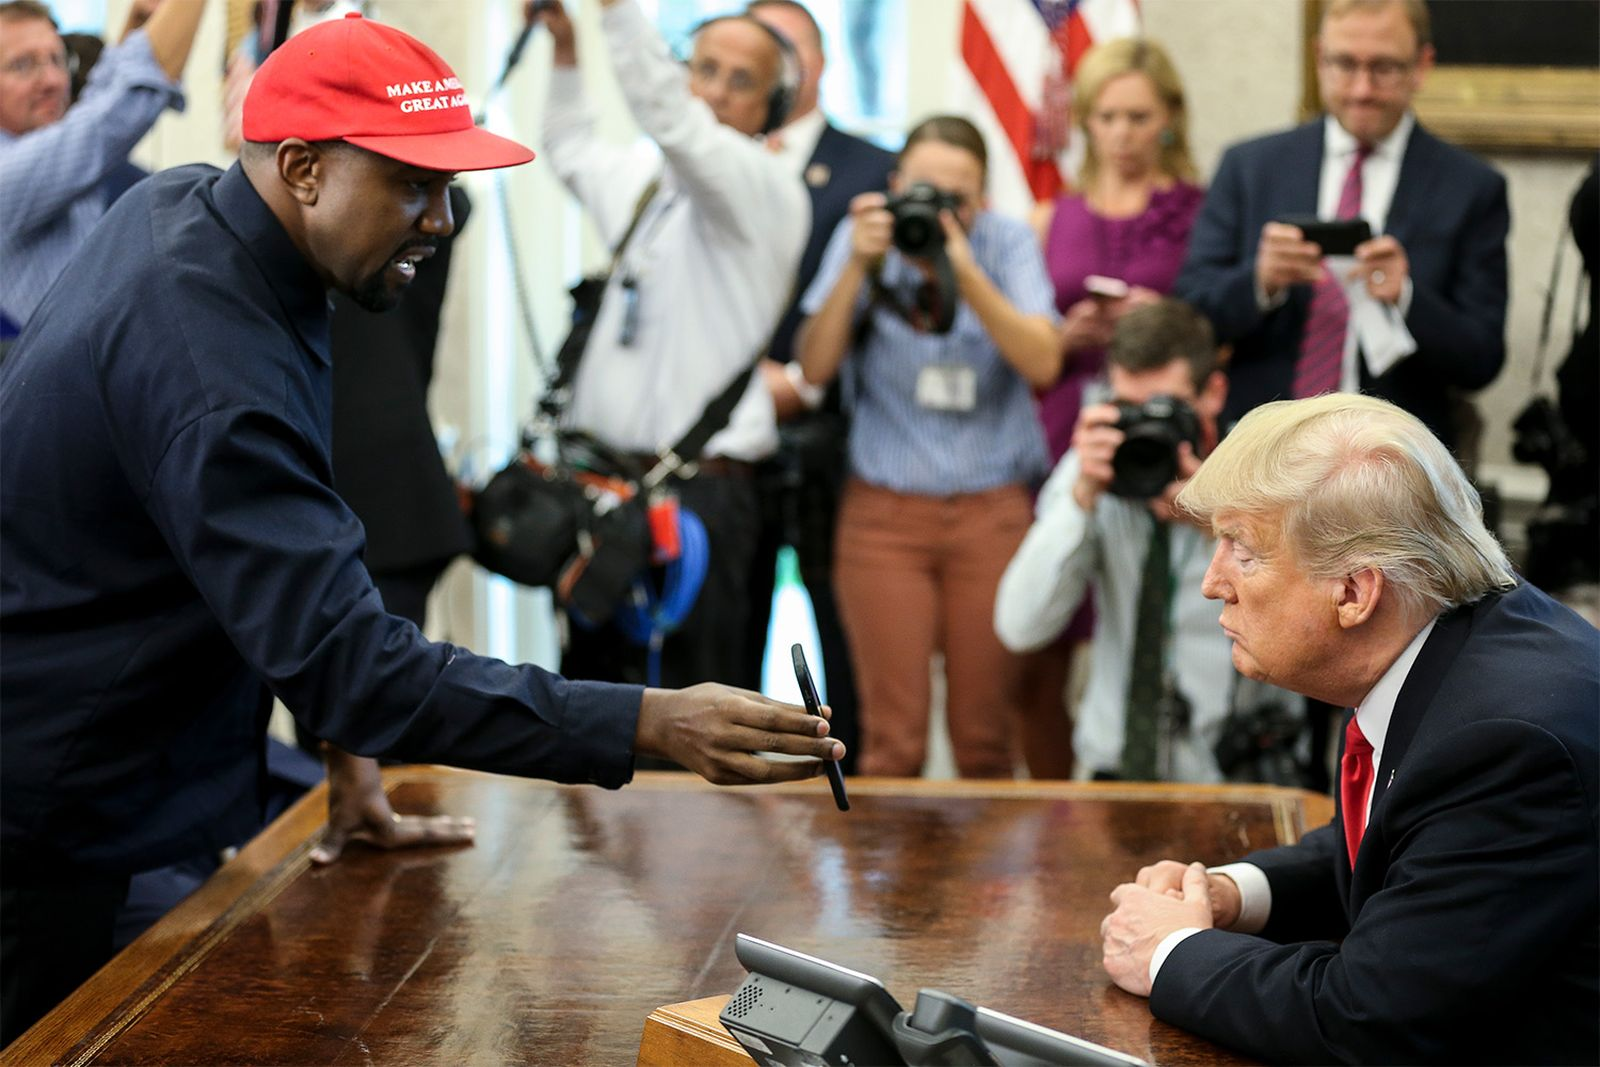 kanye west white house lunch meeting donald trump